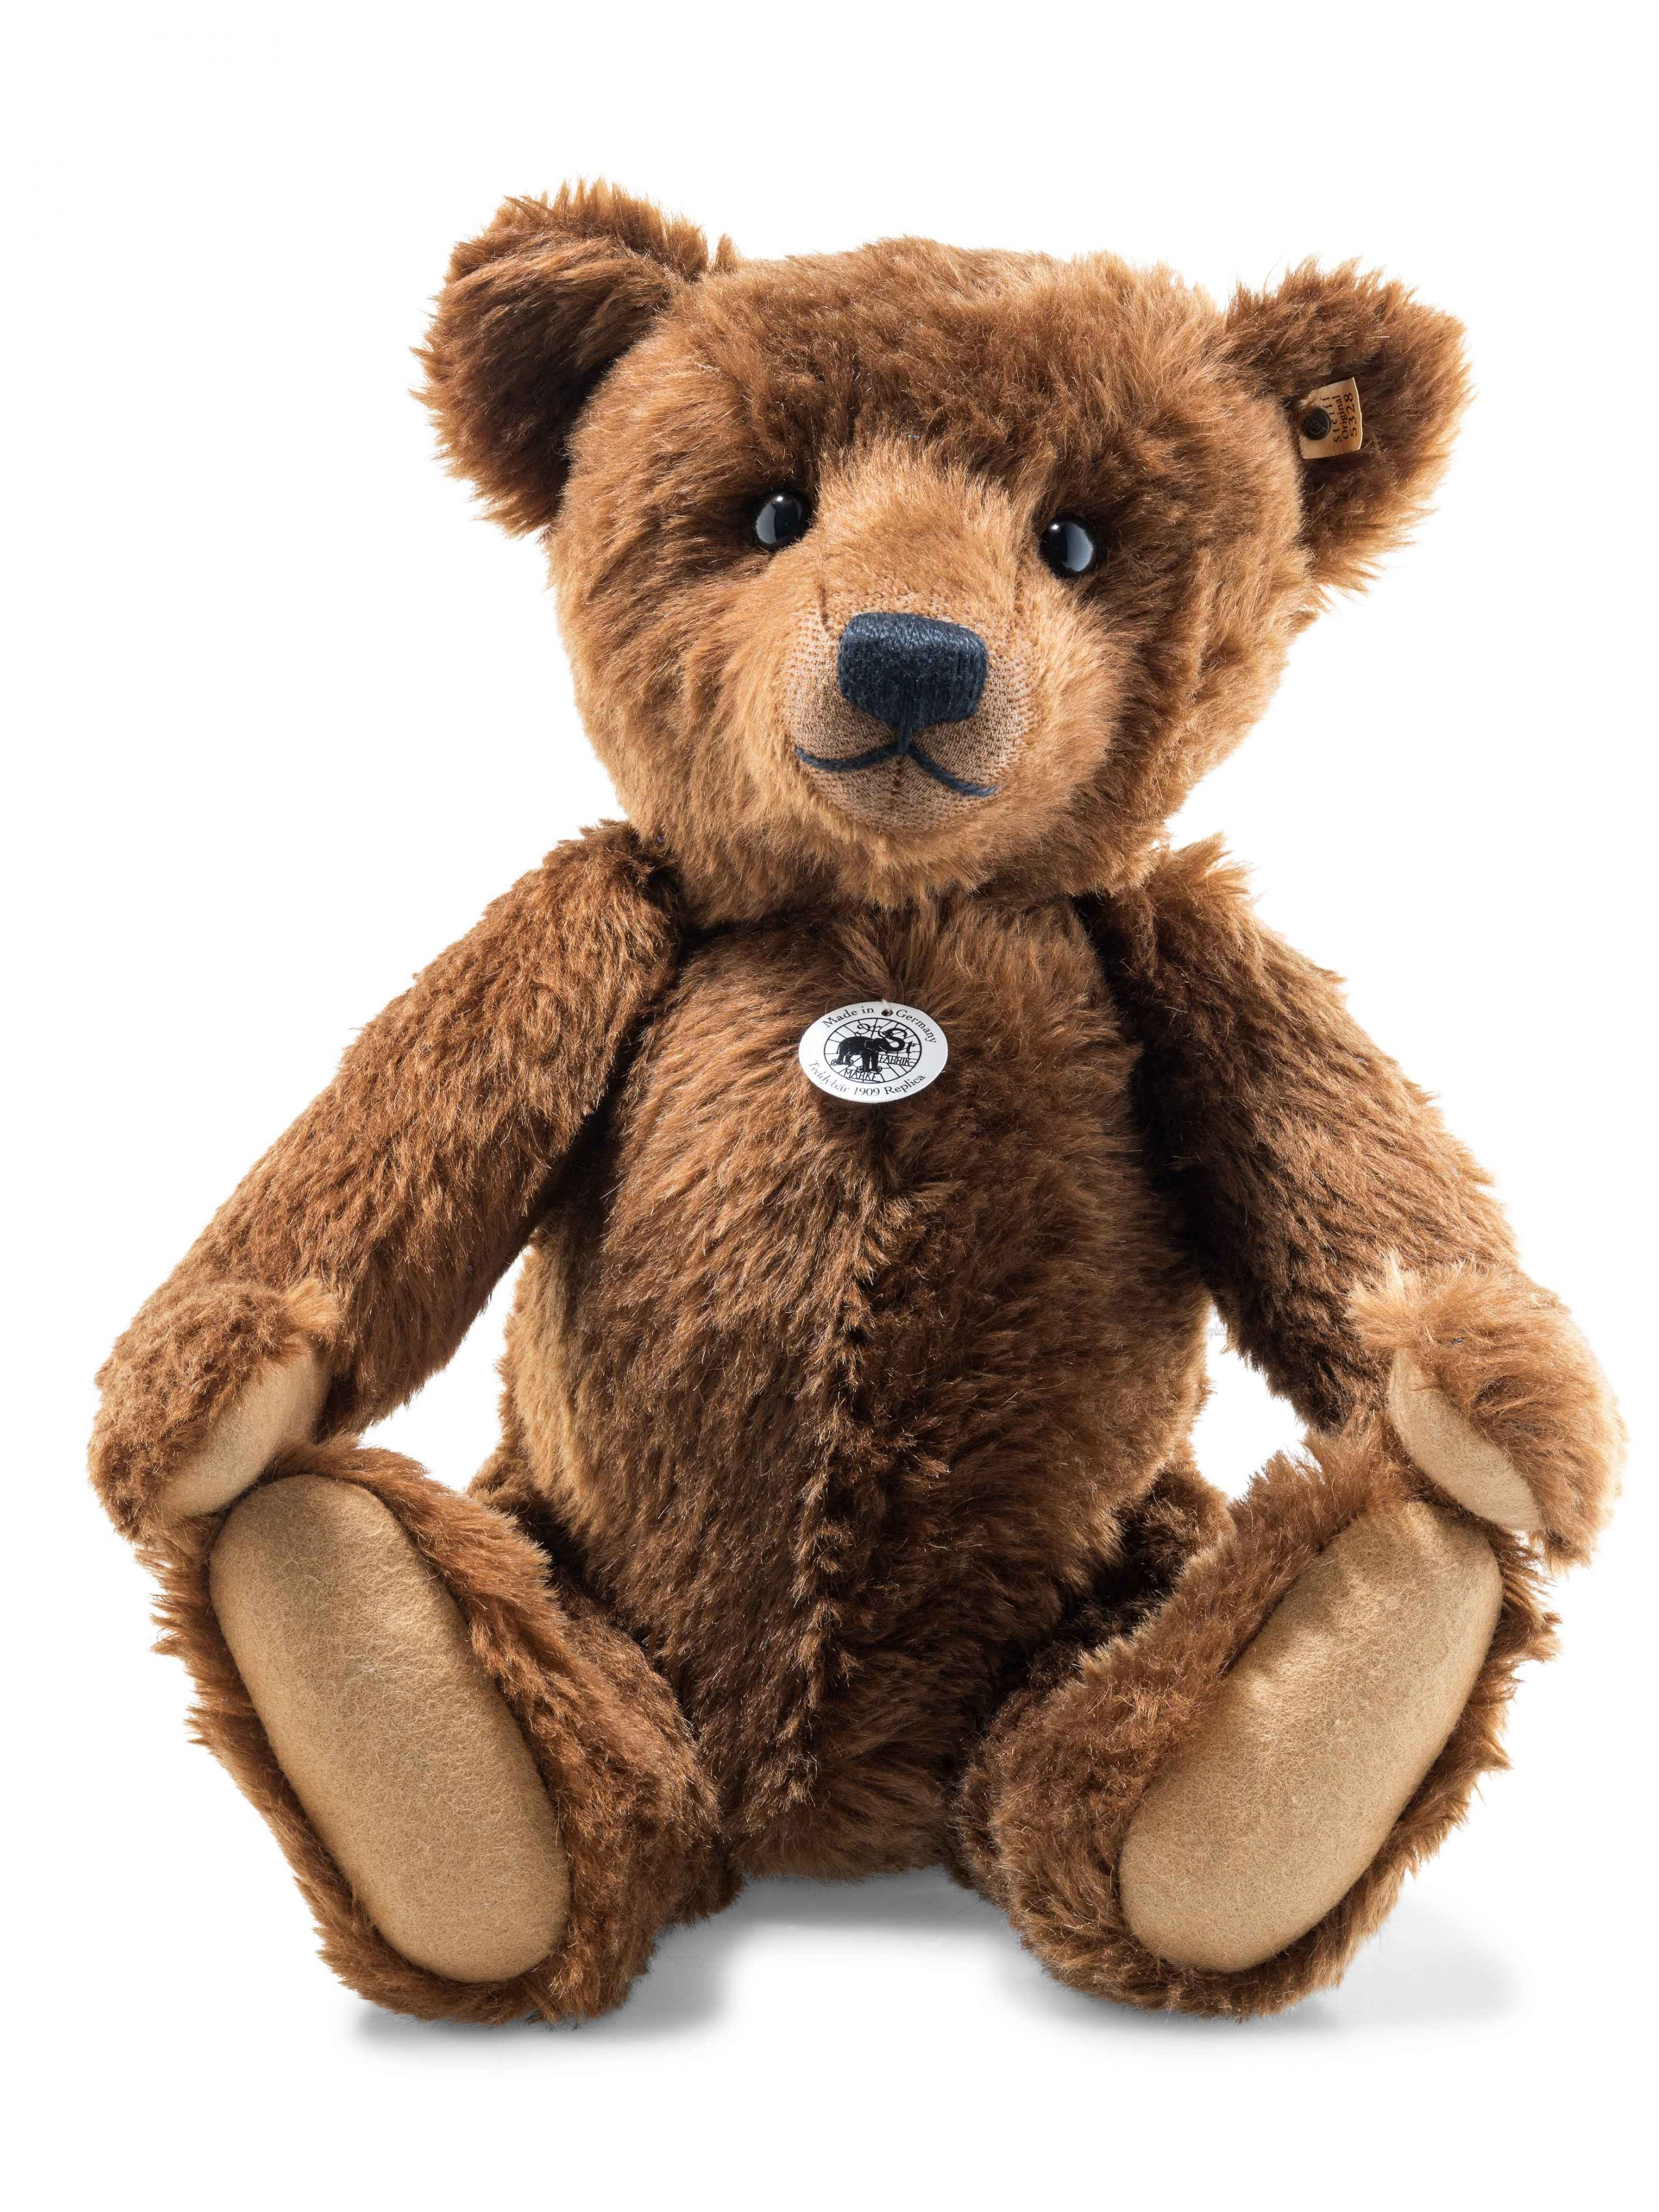 New Autumn 2018 Steiff Teddy Bear Replica 1909